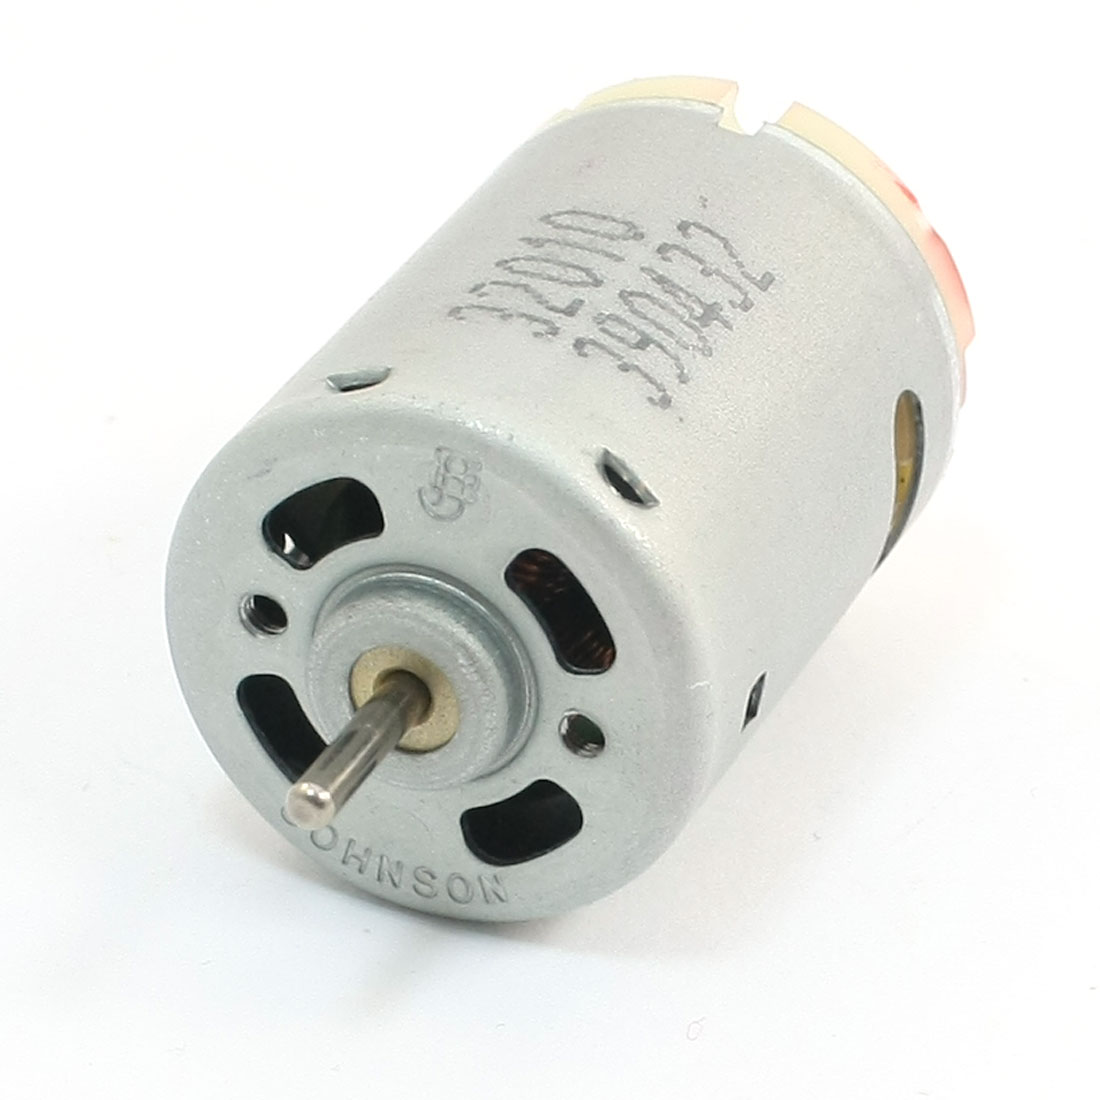 DC-12V-21000RPM-High-Speed-Magnetic-Motor-for-Electric-Plush-Toy